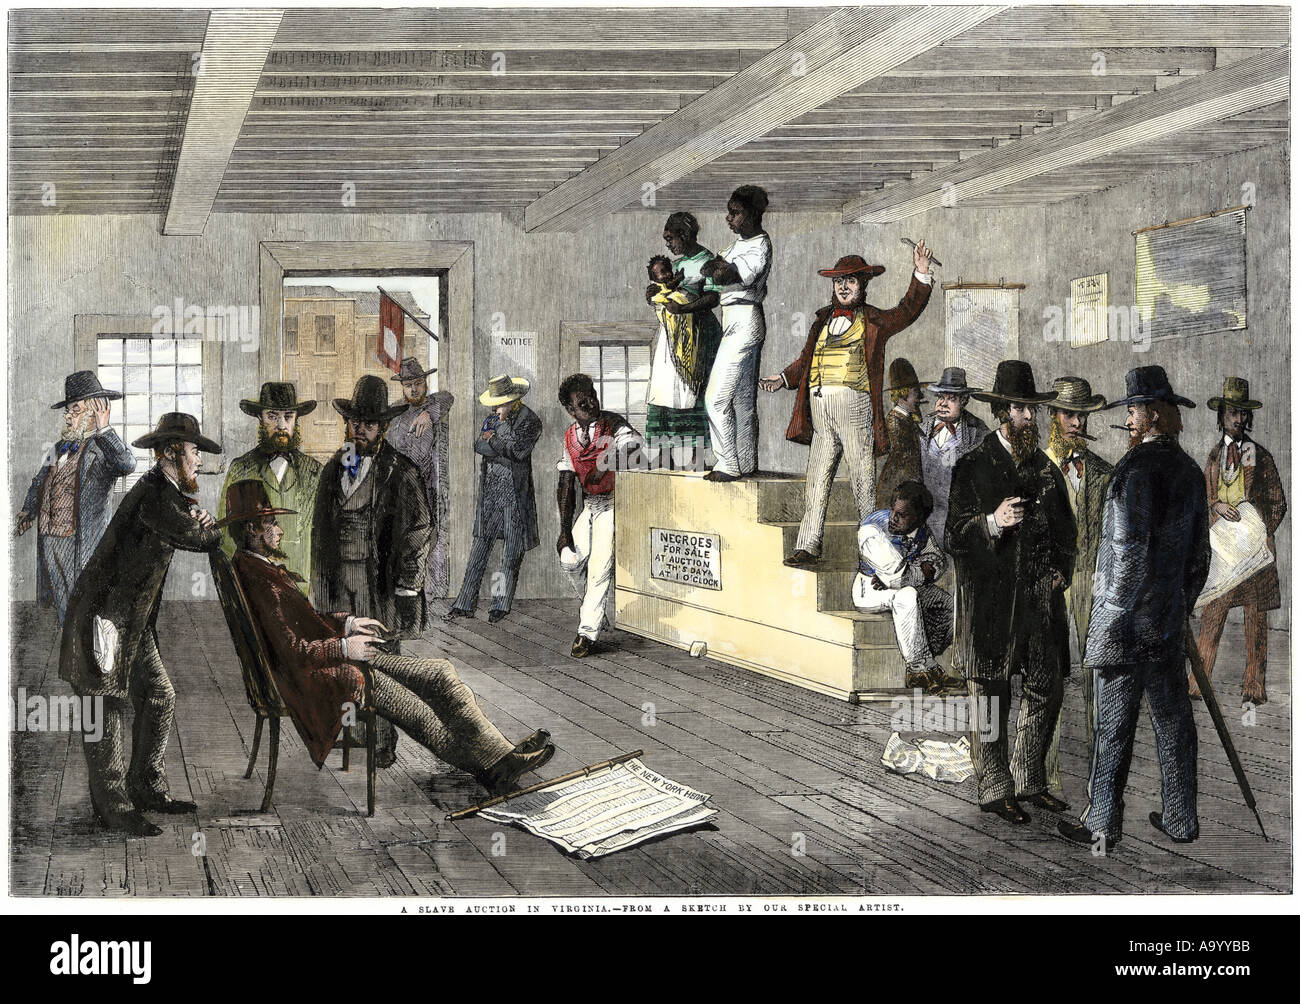 Slave auction in Virginia 1800s. Hand-colored woodcut - Stock Image